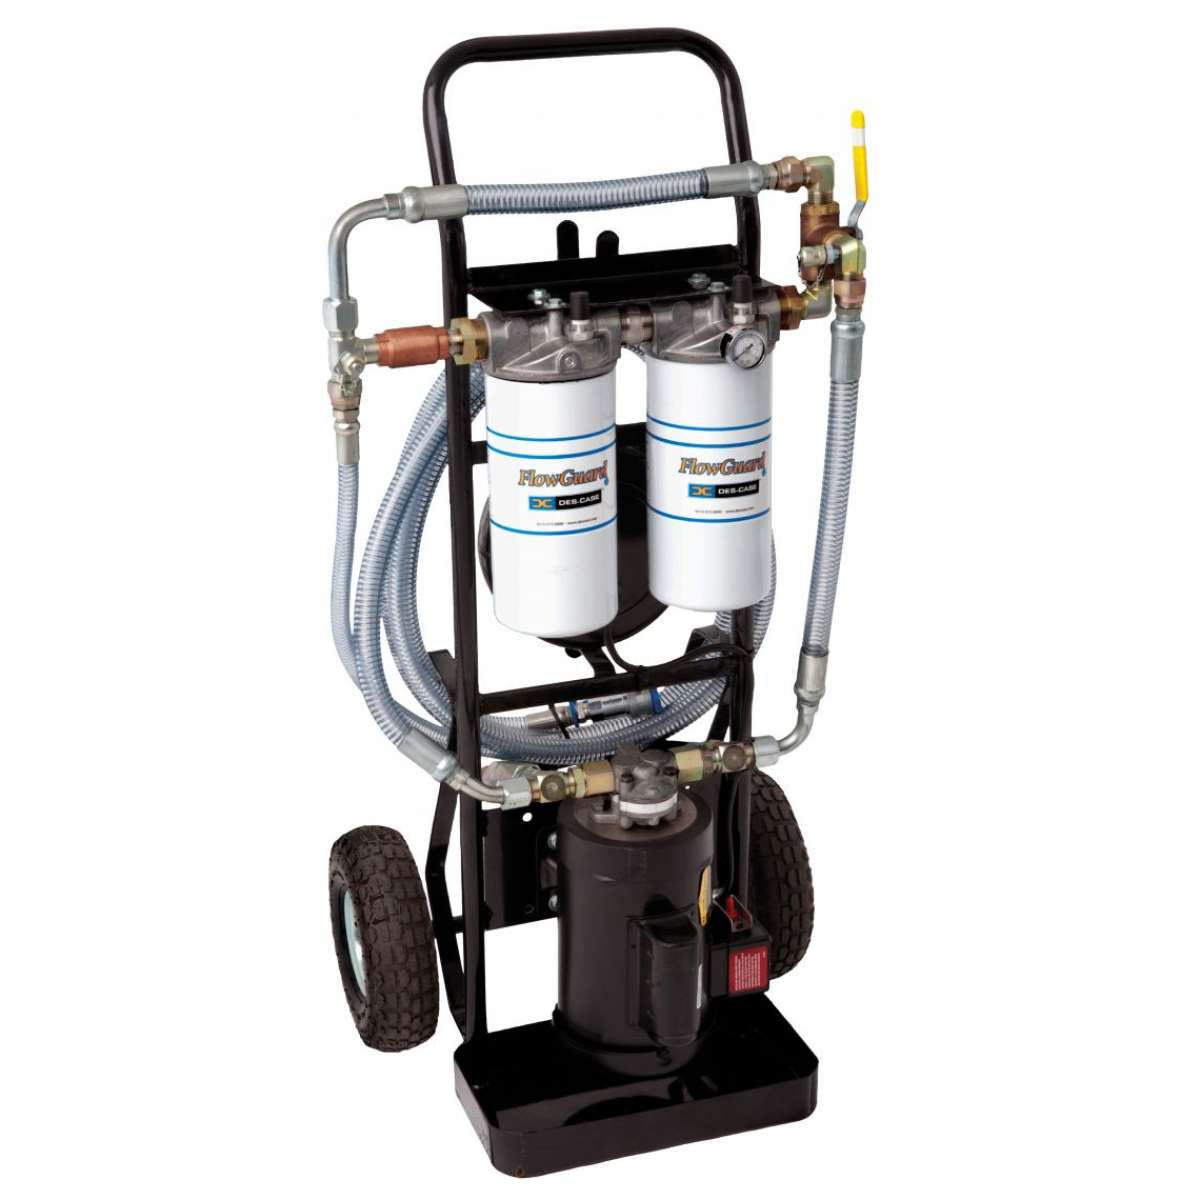 FlowGuard Filter Cart 2 gpm pump / 1 hp electric motor, 115 vac, 60 hz, 1725 rpms, 13 amps